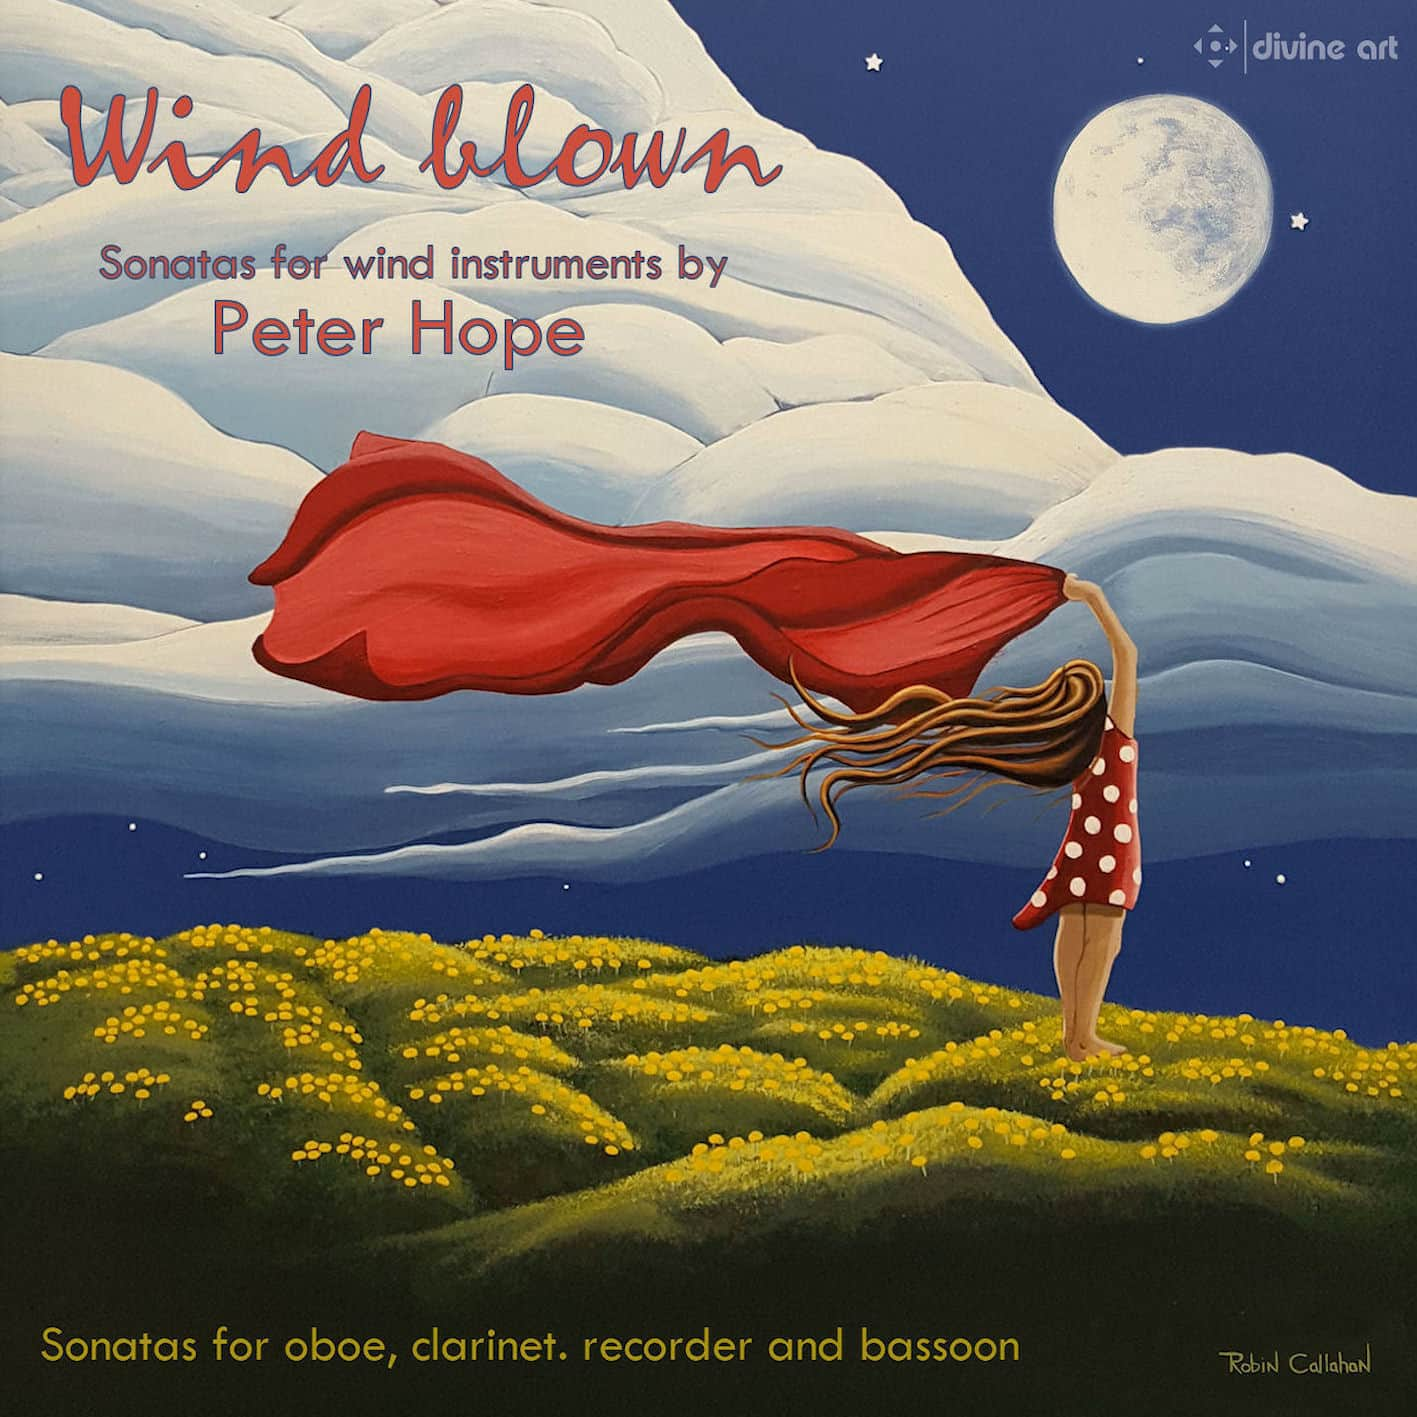 Wind Blown - Sonatas for Wind Instruments